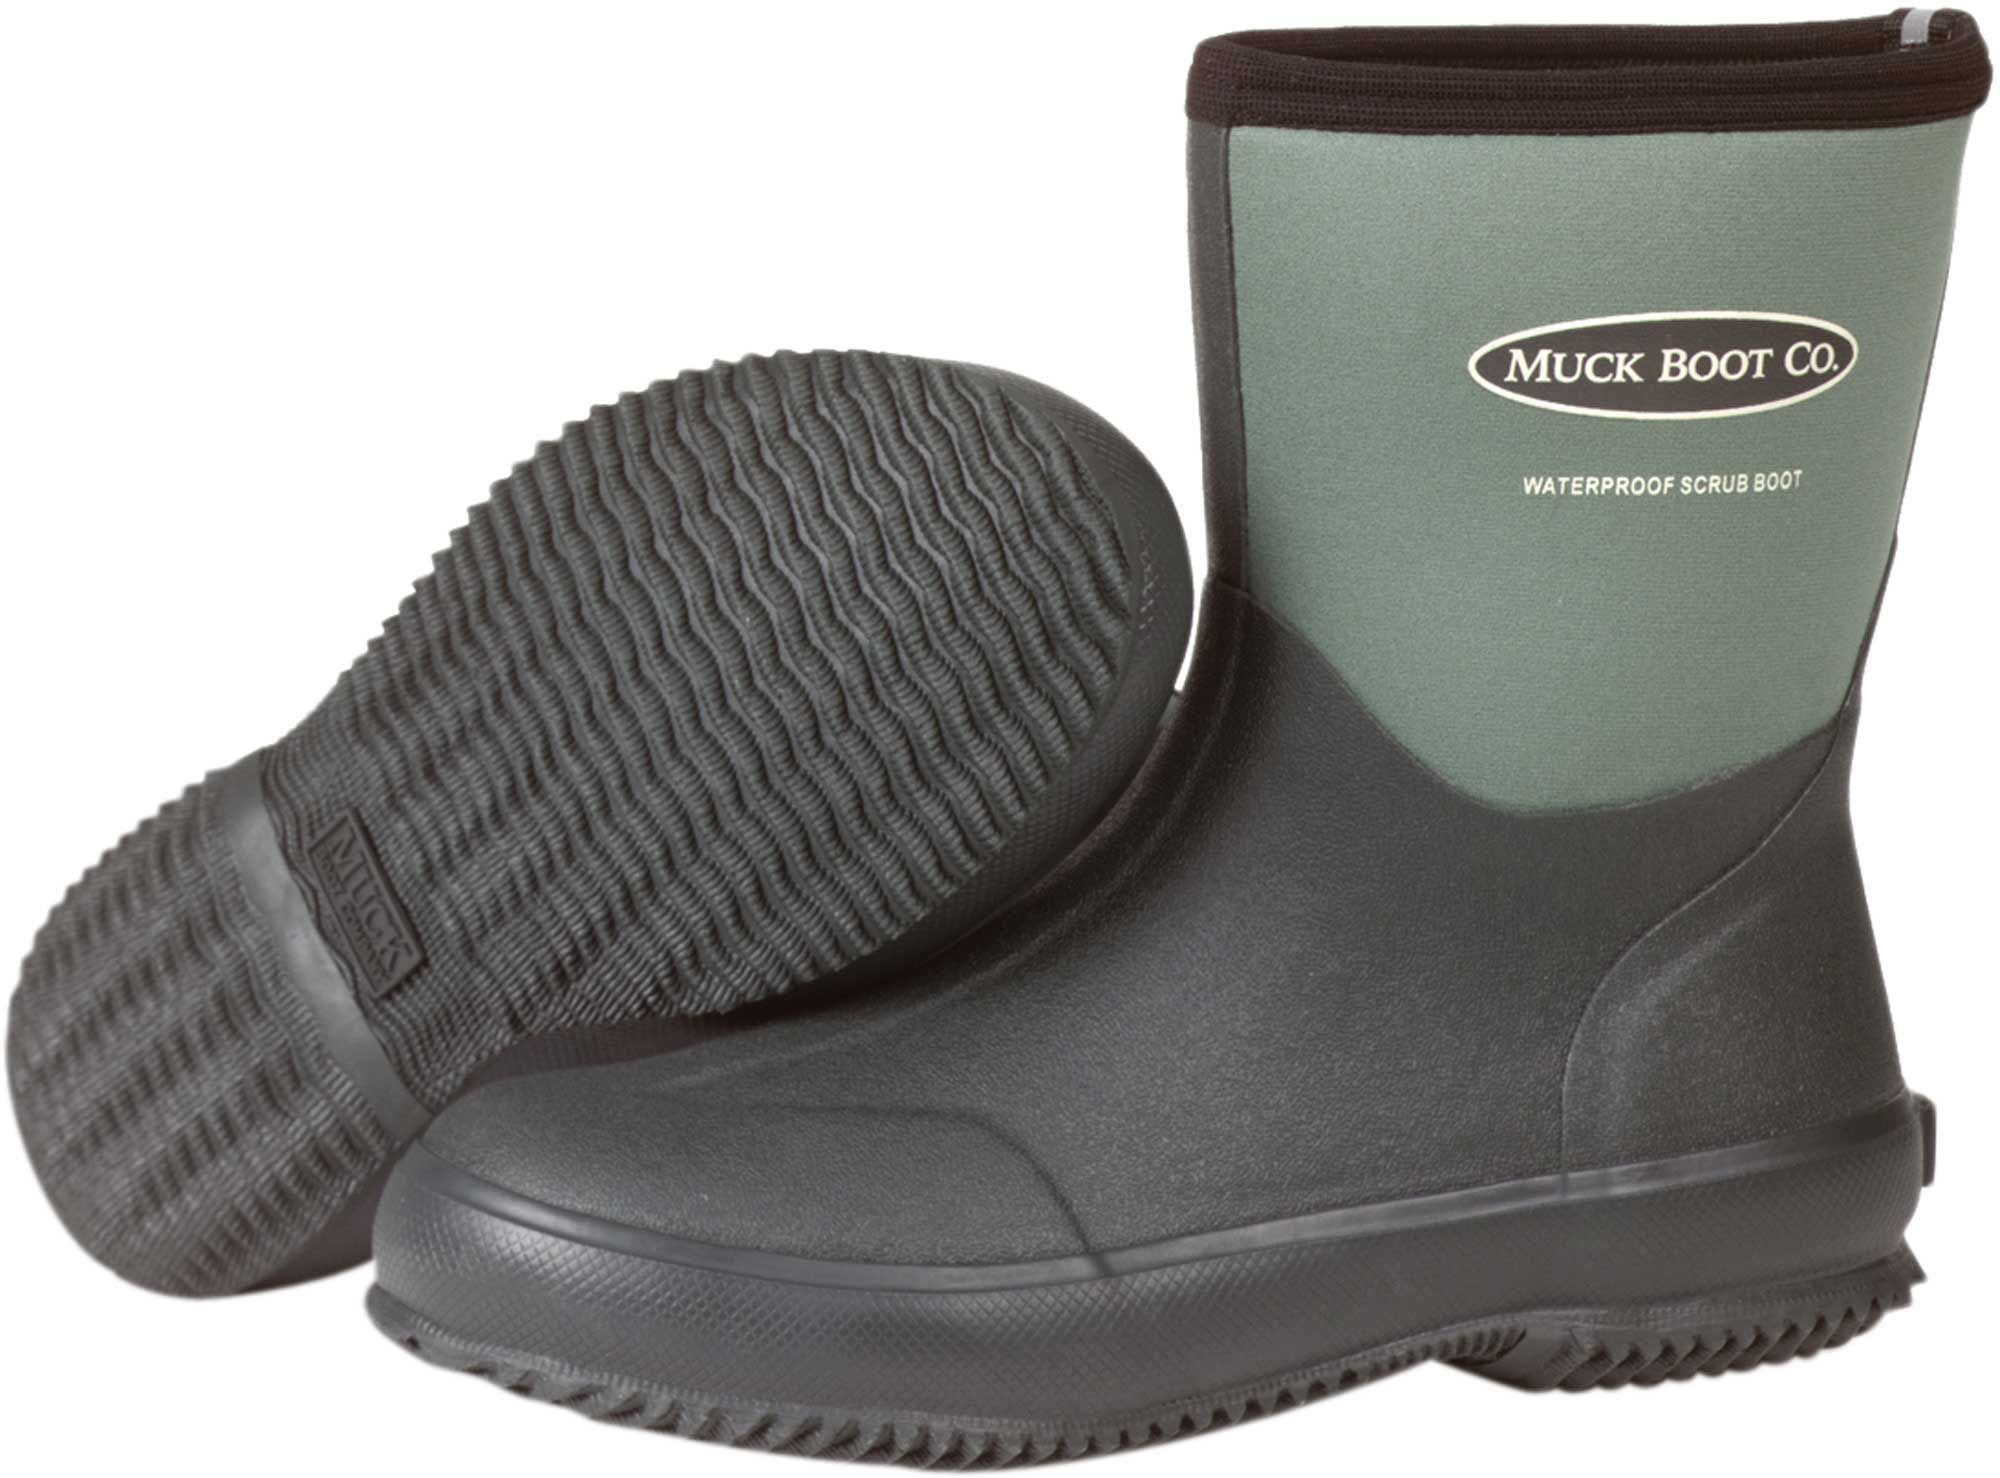 Muck Boot Waterproof Scrub Boots| DICK'S Sporting Goods